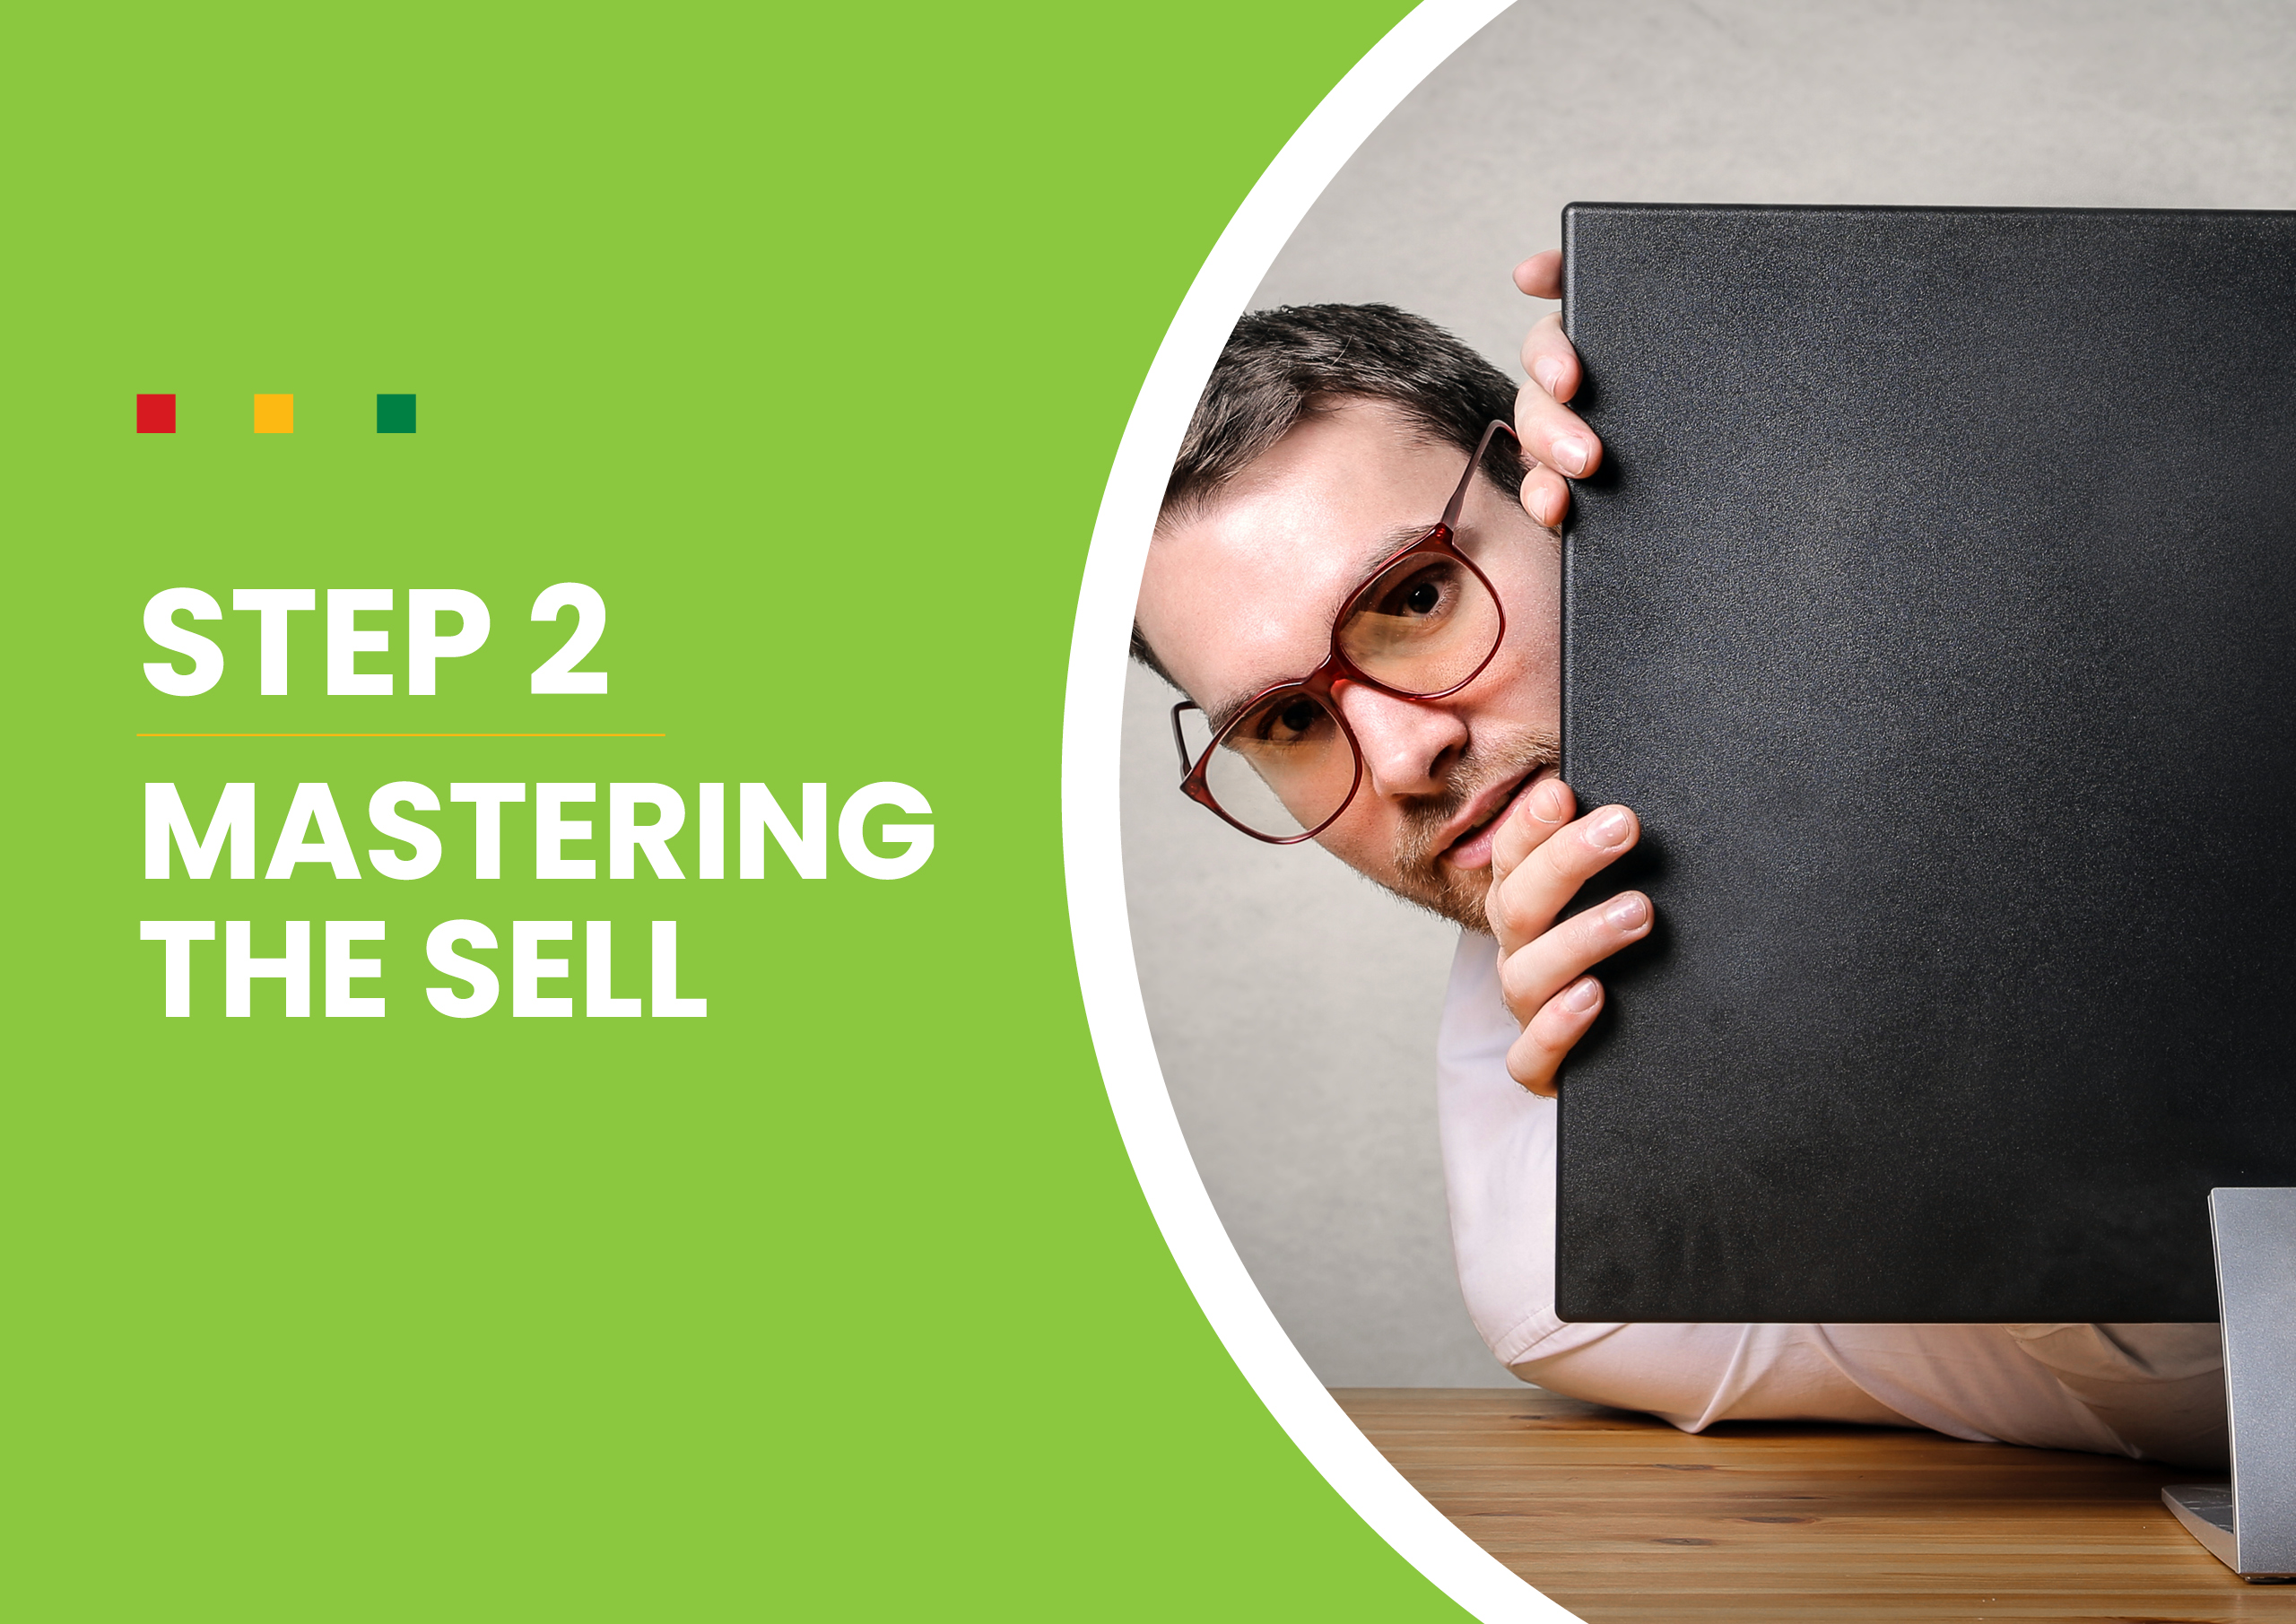 Get-Real-Mastering-The-Sell-2-big